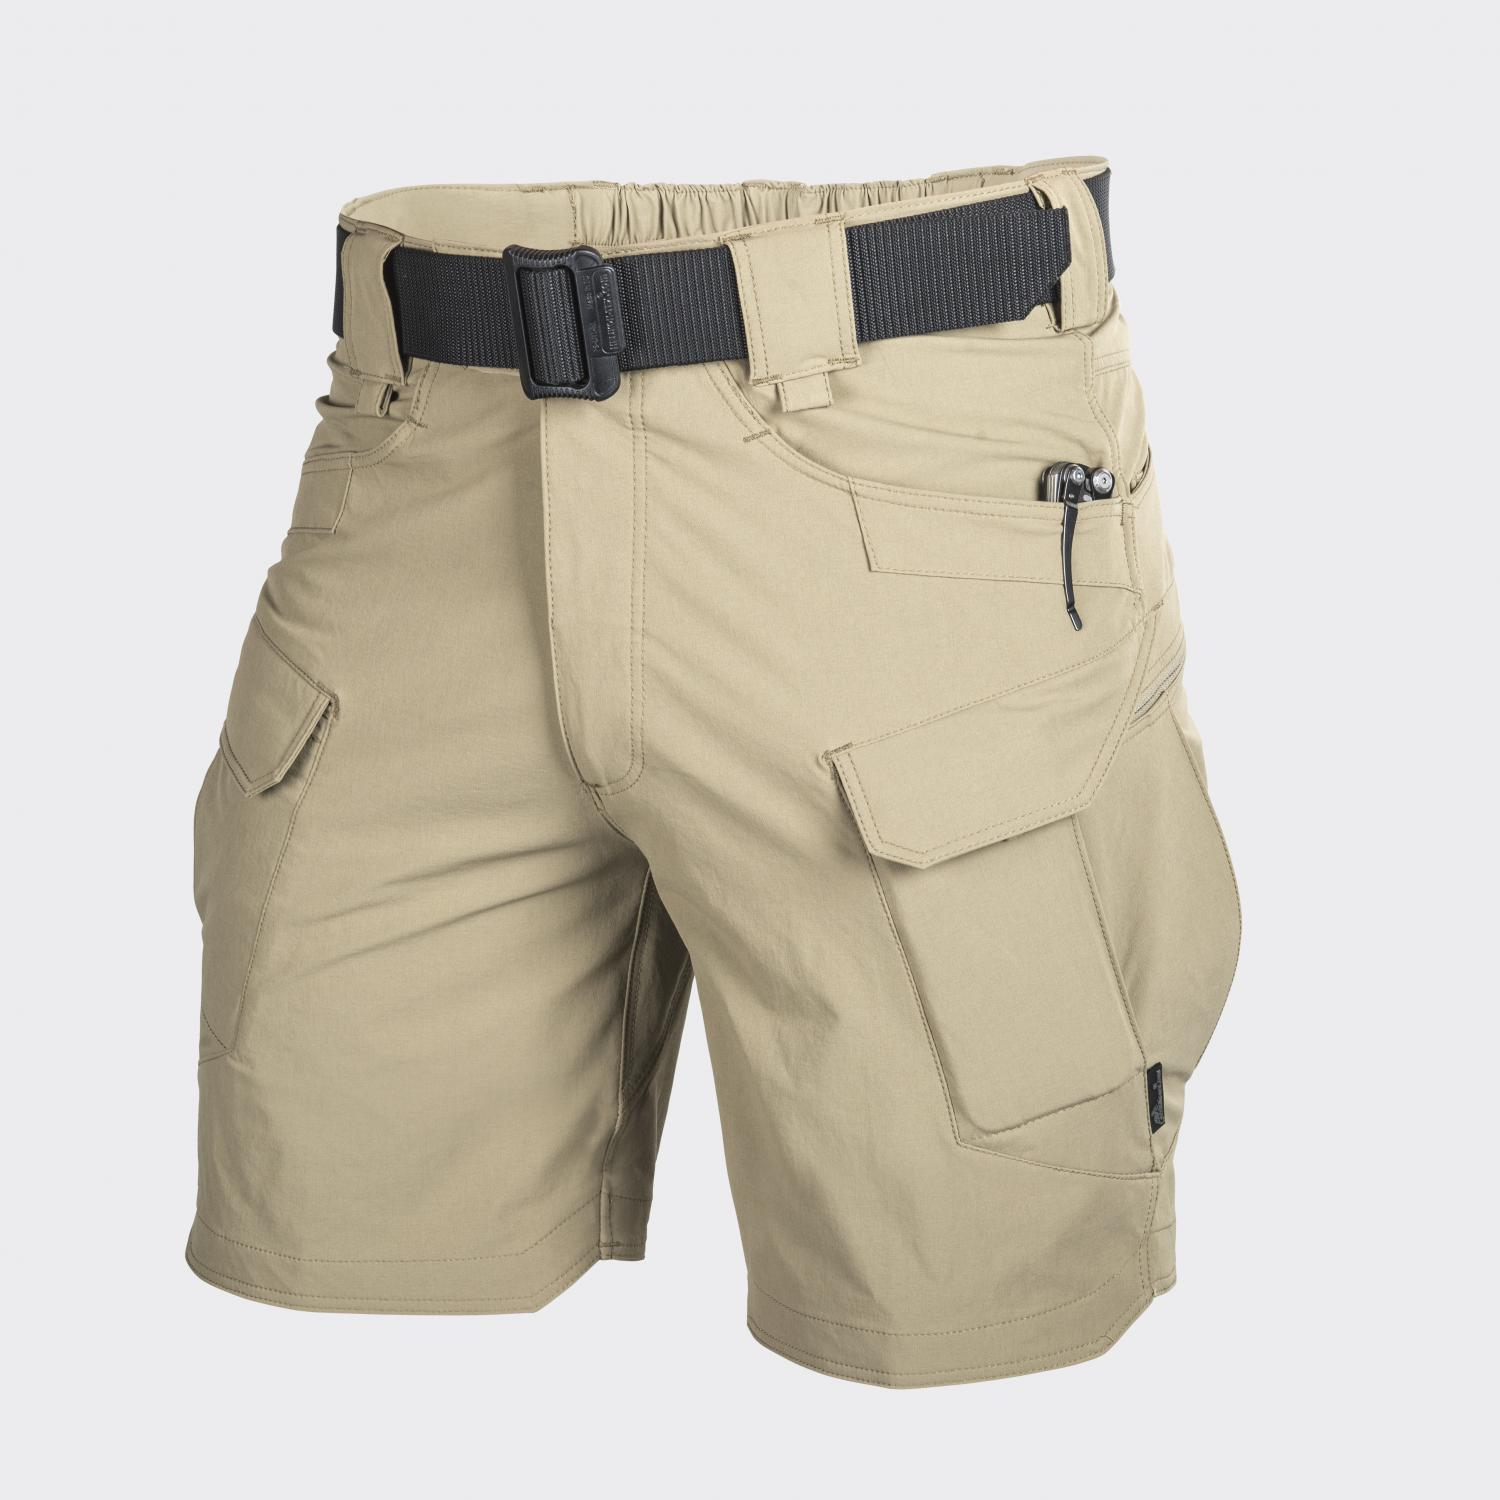 OUTDOOR TACTICAL SHORTS 8.5, Nylon, Khaki